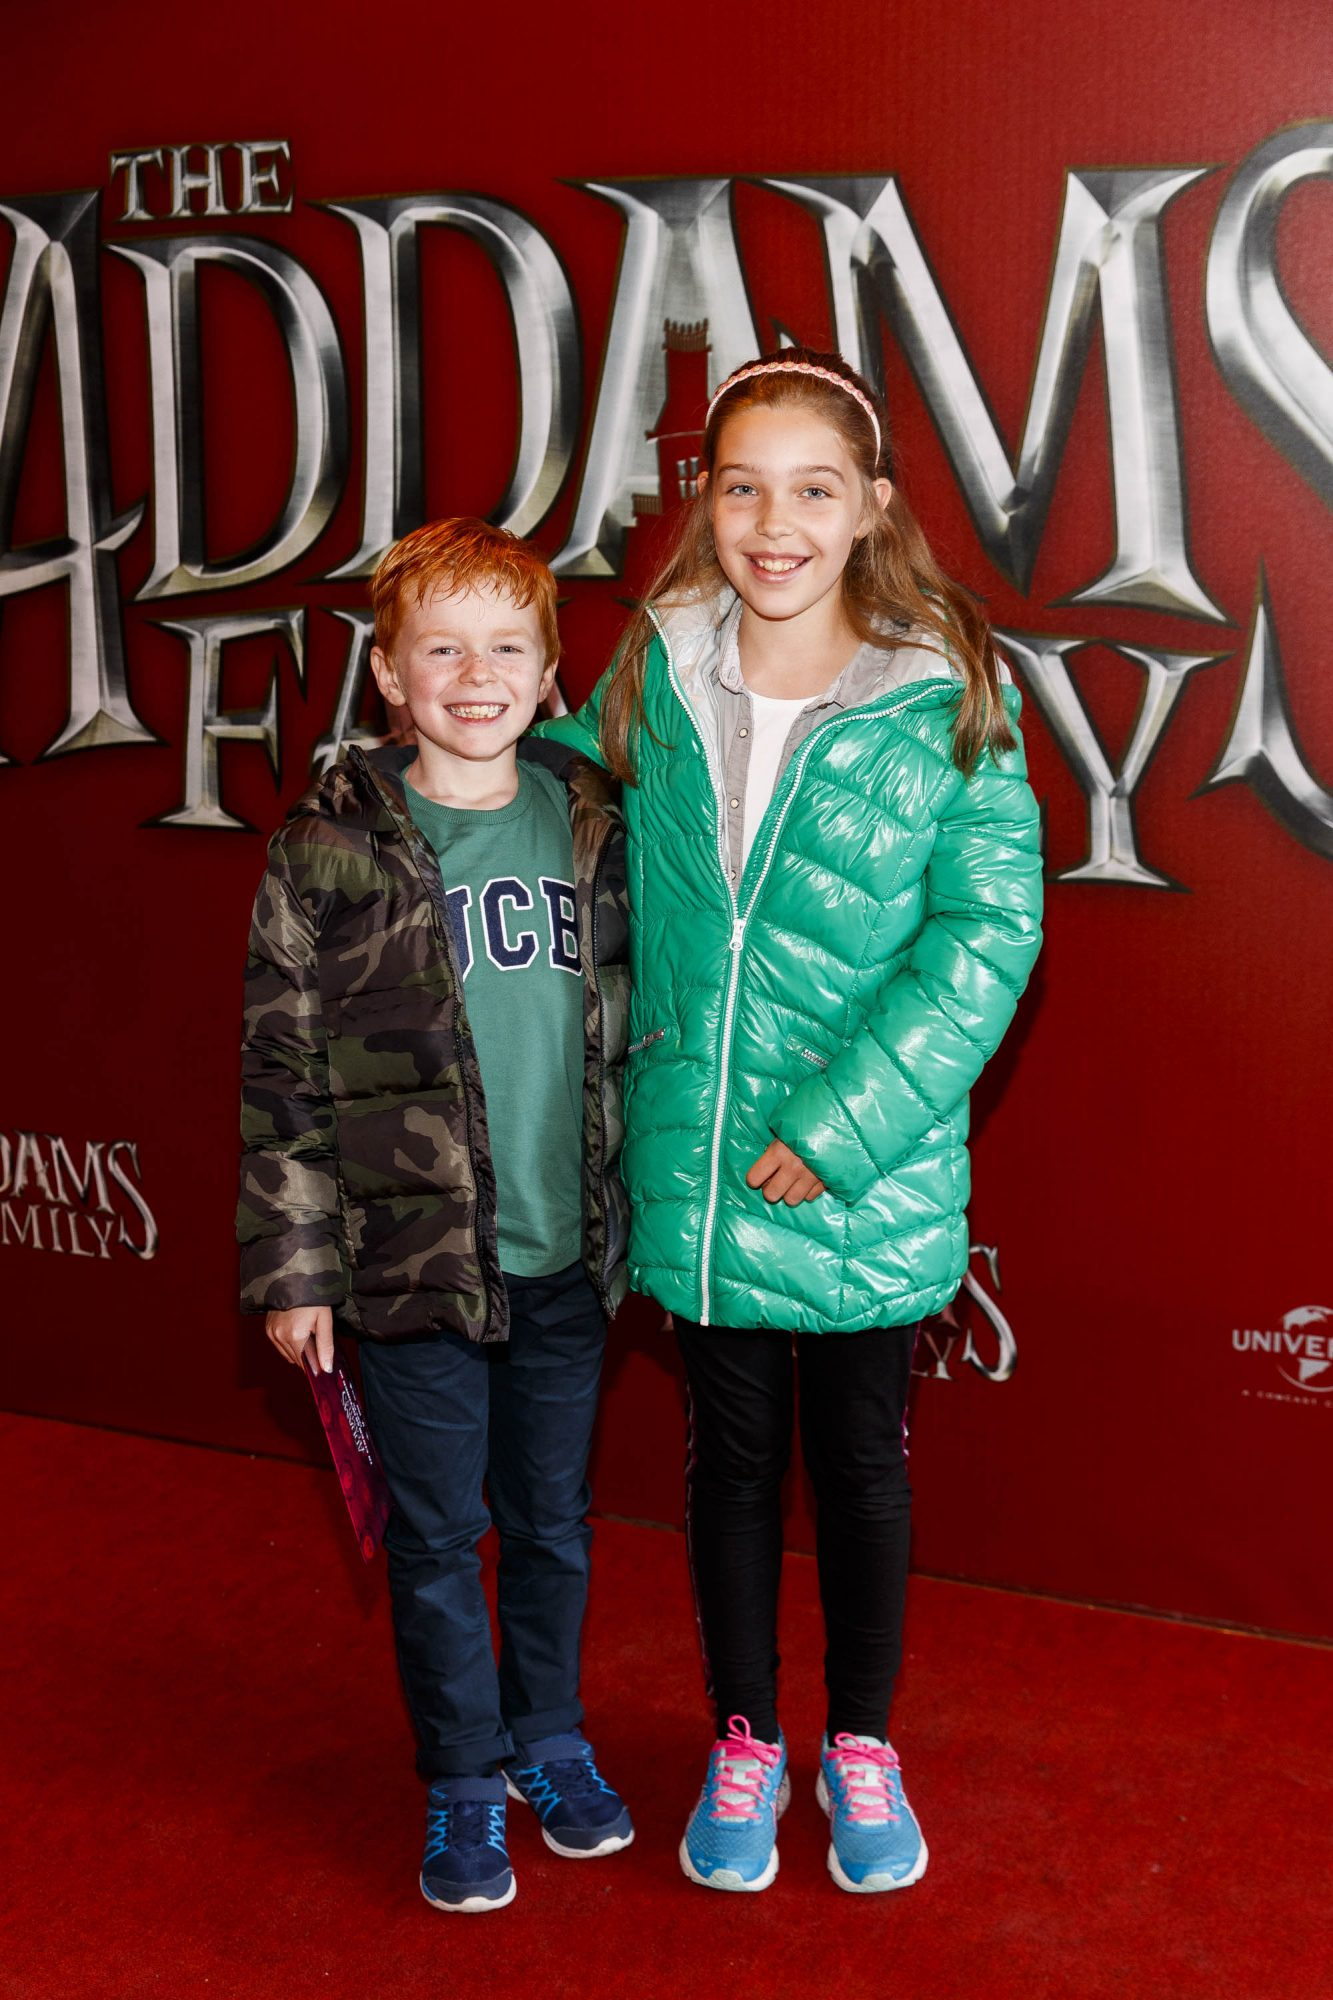 Conal Race (8) and Niamh Race (10) pictured at a special preview screening of The Addams Family at the Light House Cinema, Dublin.  Picture: Andres Poveda